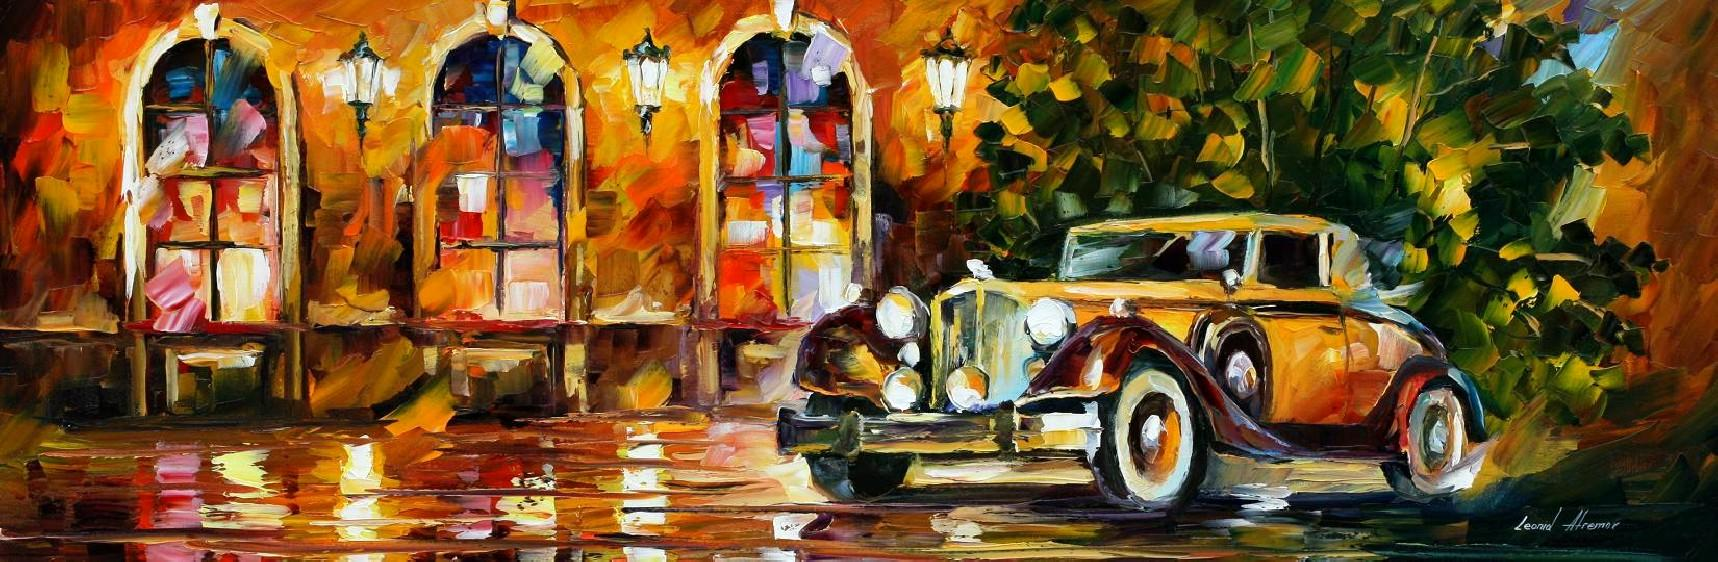 Modern impressionism palette knife oil painting kp15192